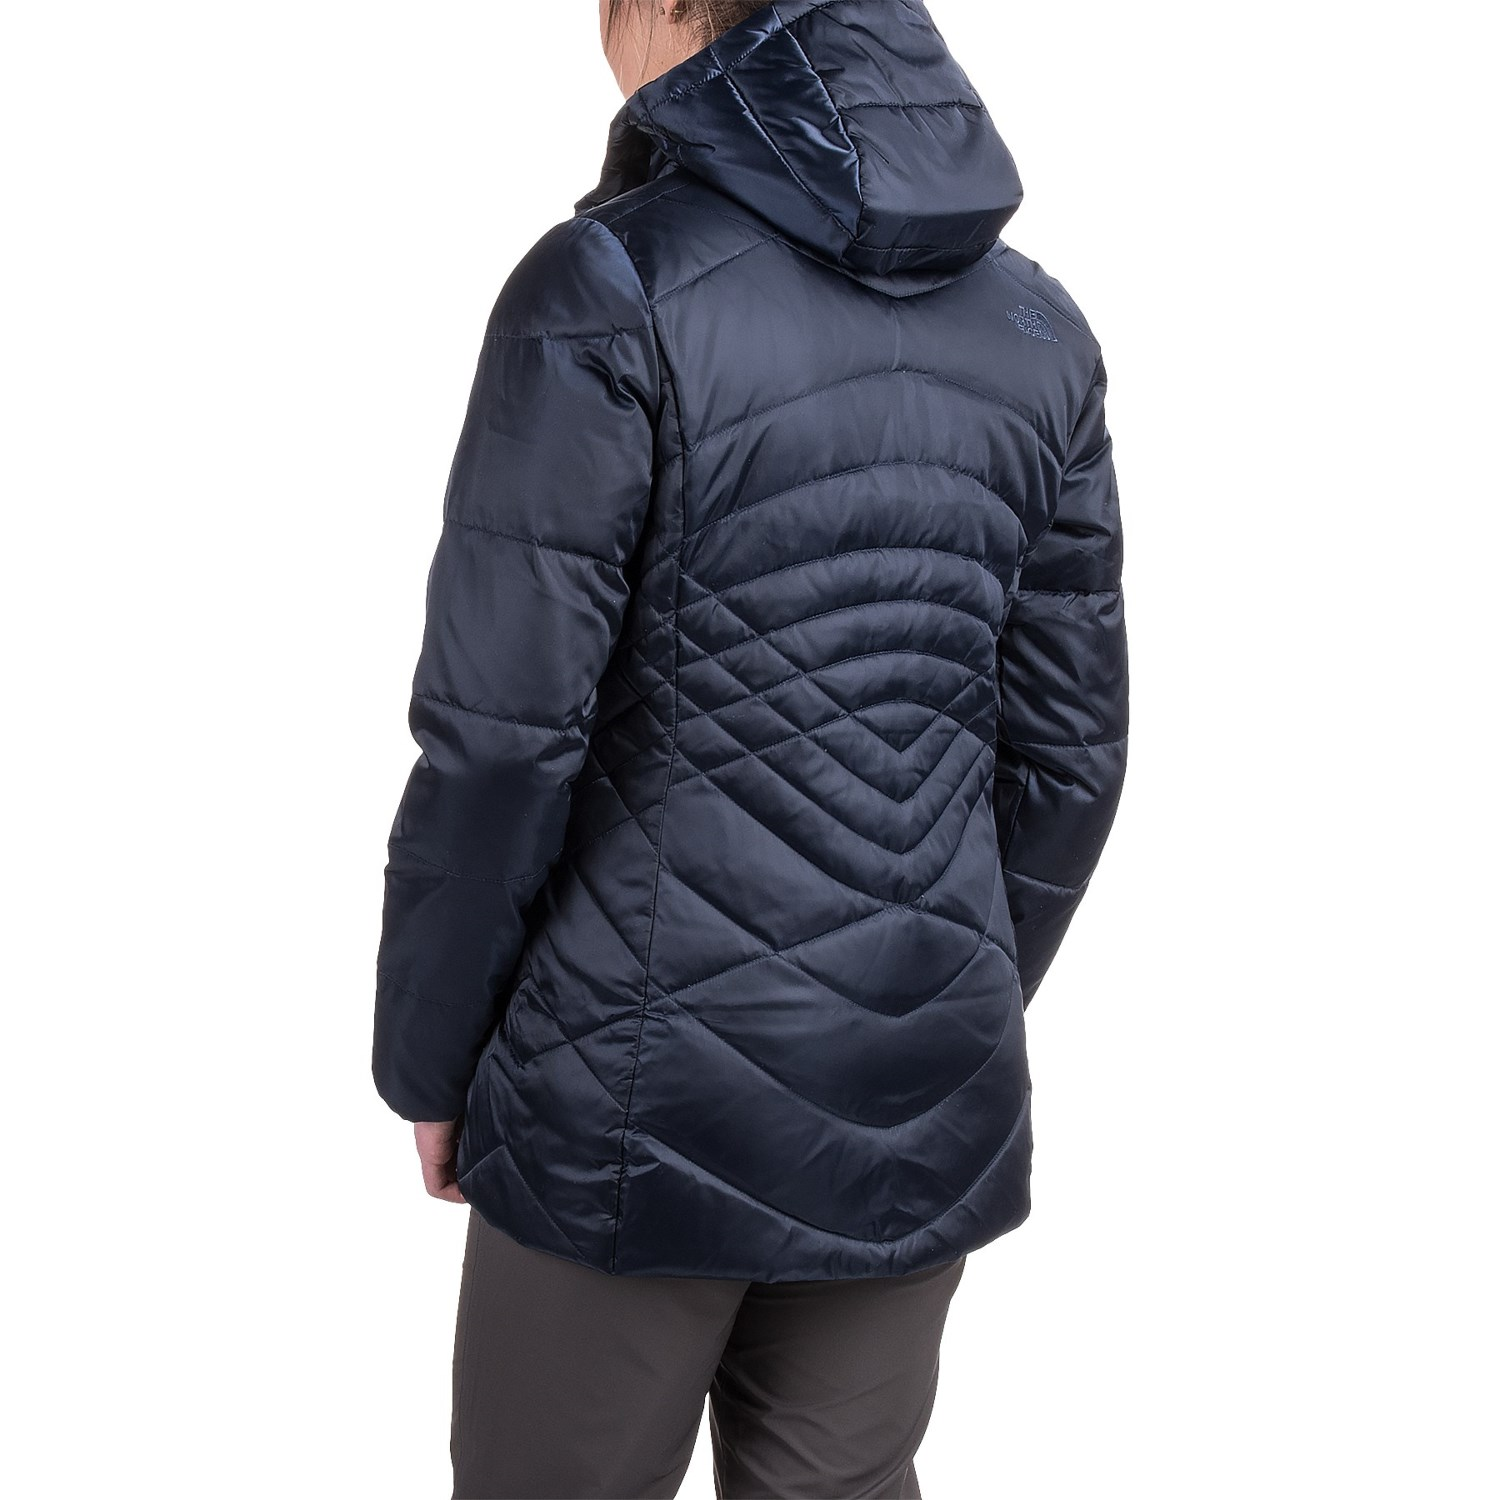 North Face Schoudertas : The north face aconcagua down hooded parka for women